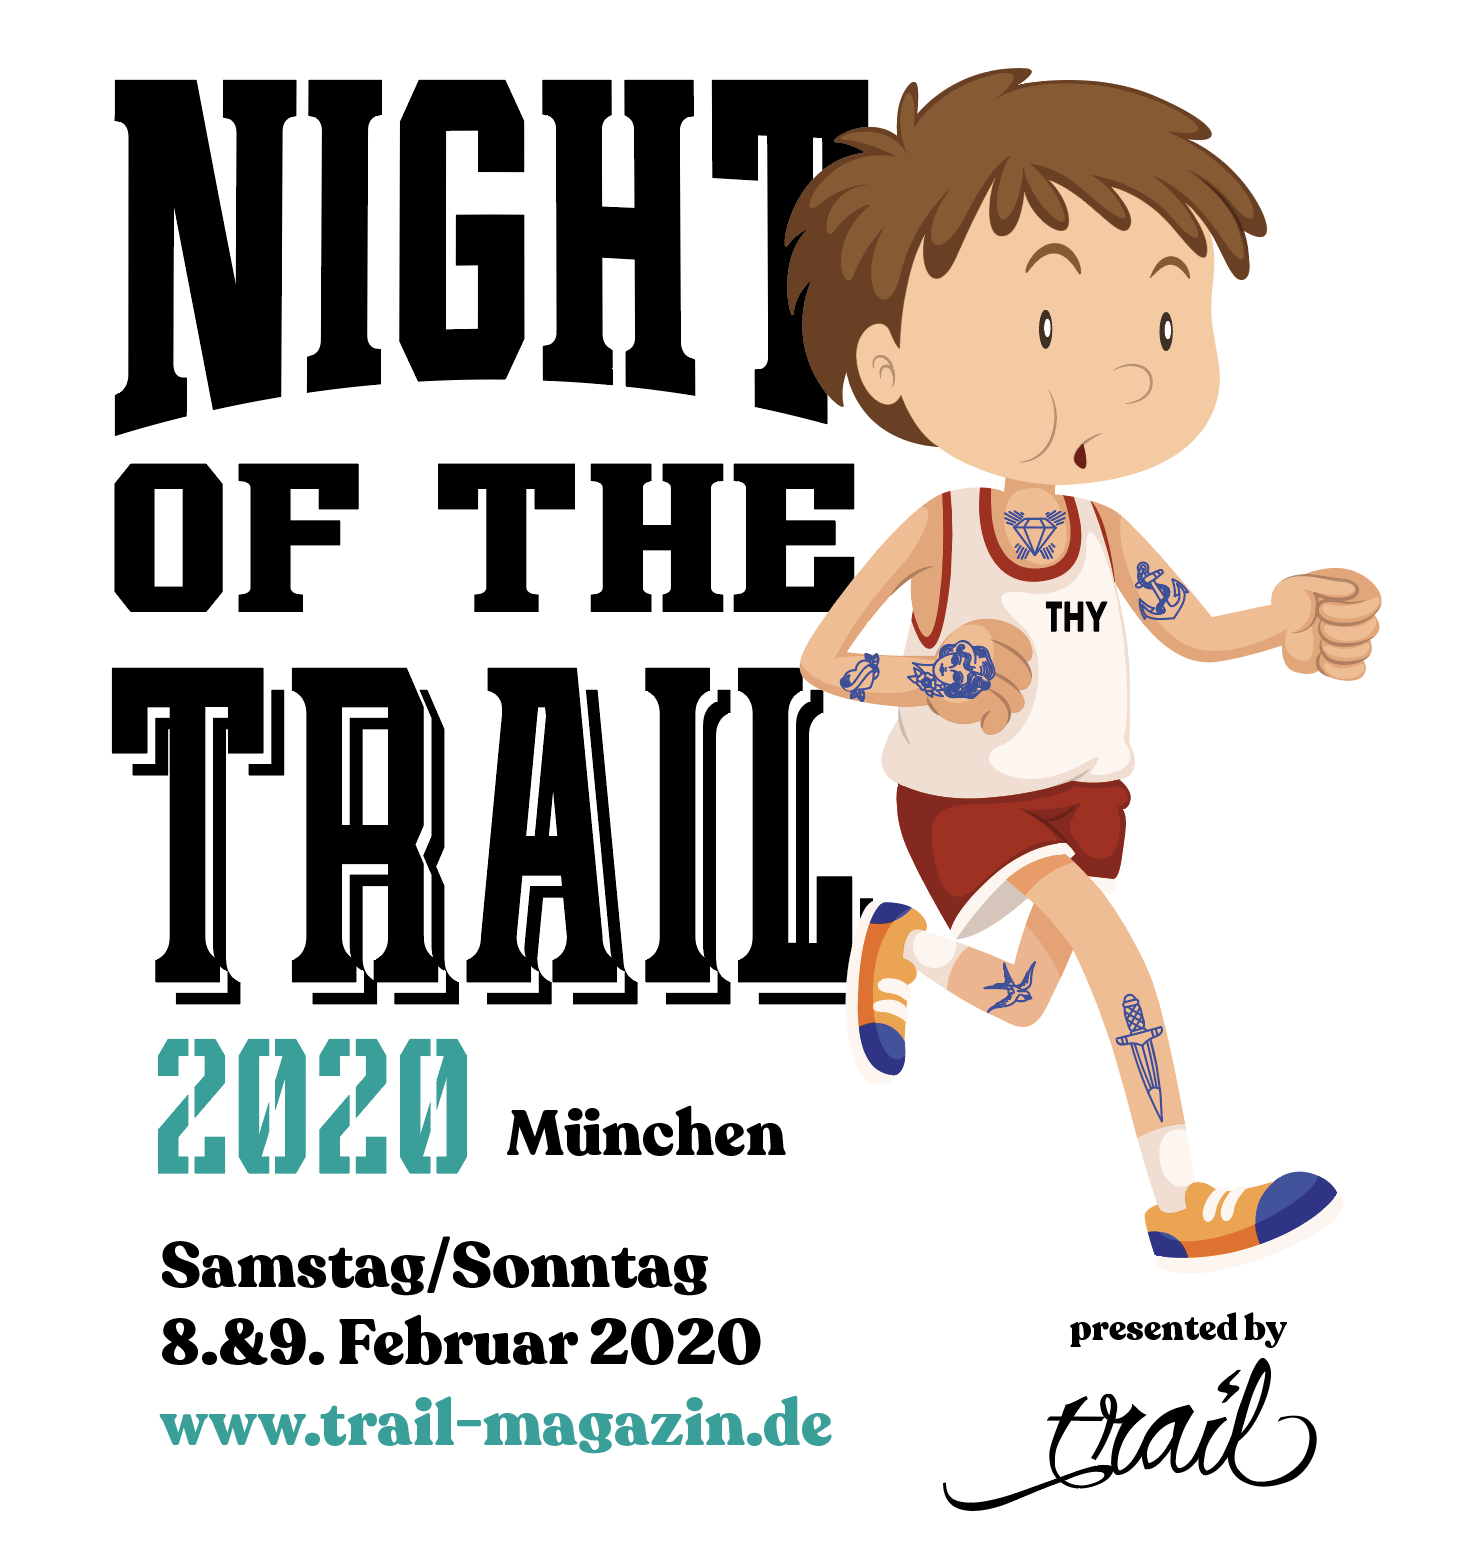 1. NIGHT OF THE TRAIL nahezu ausverkauft!